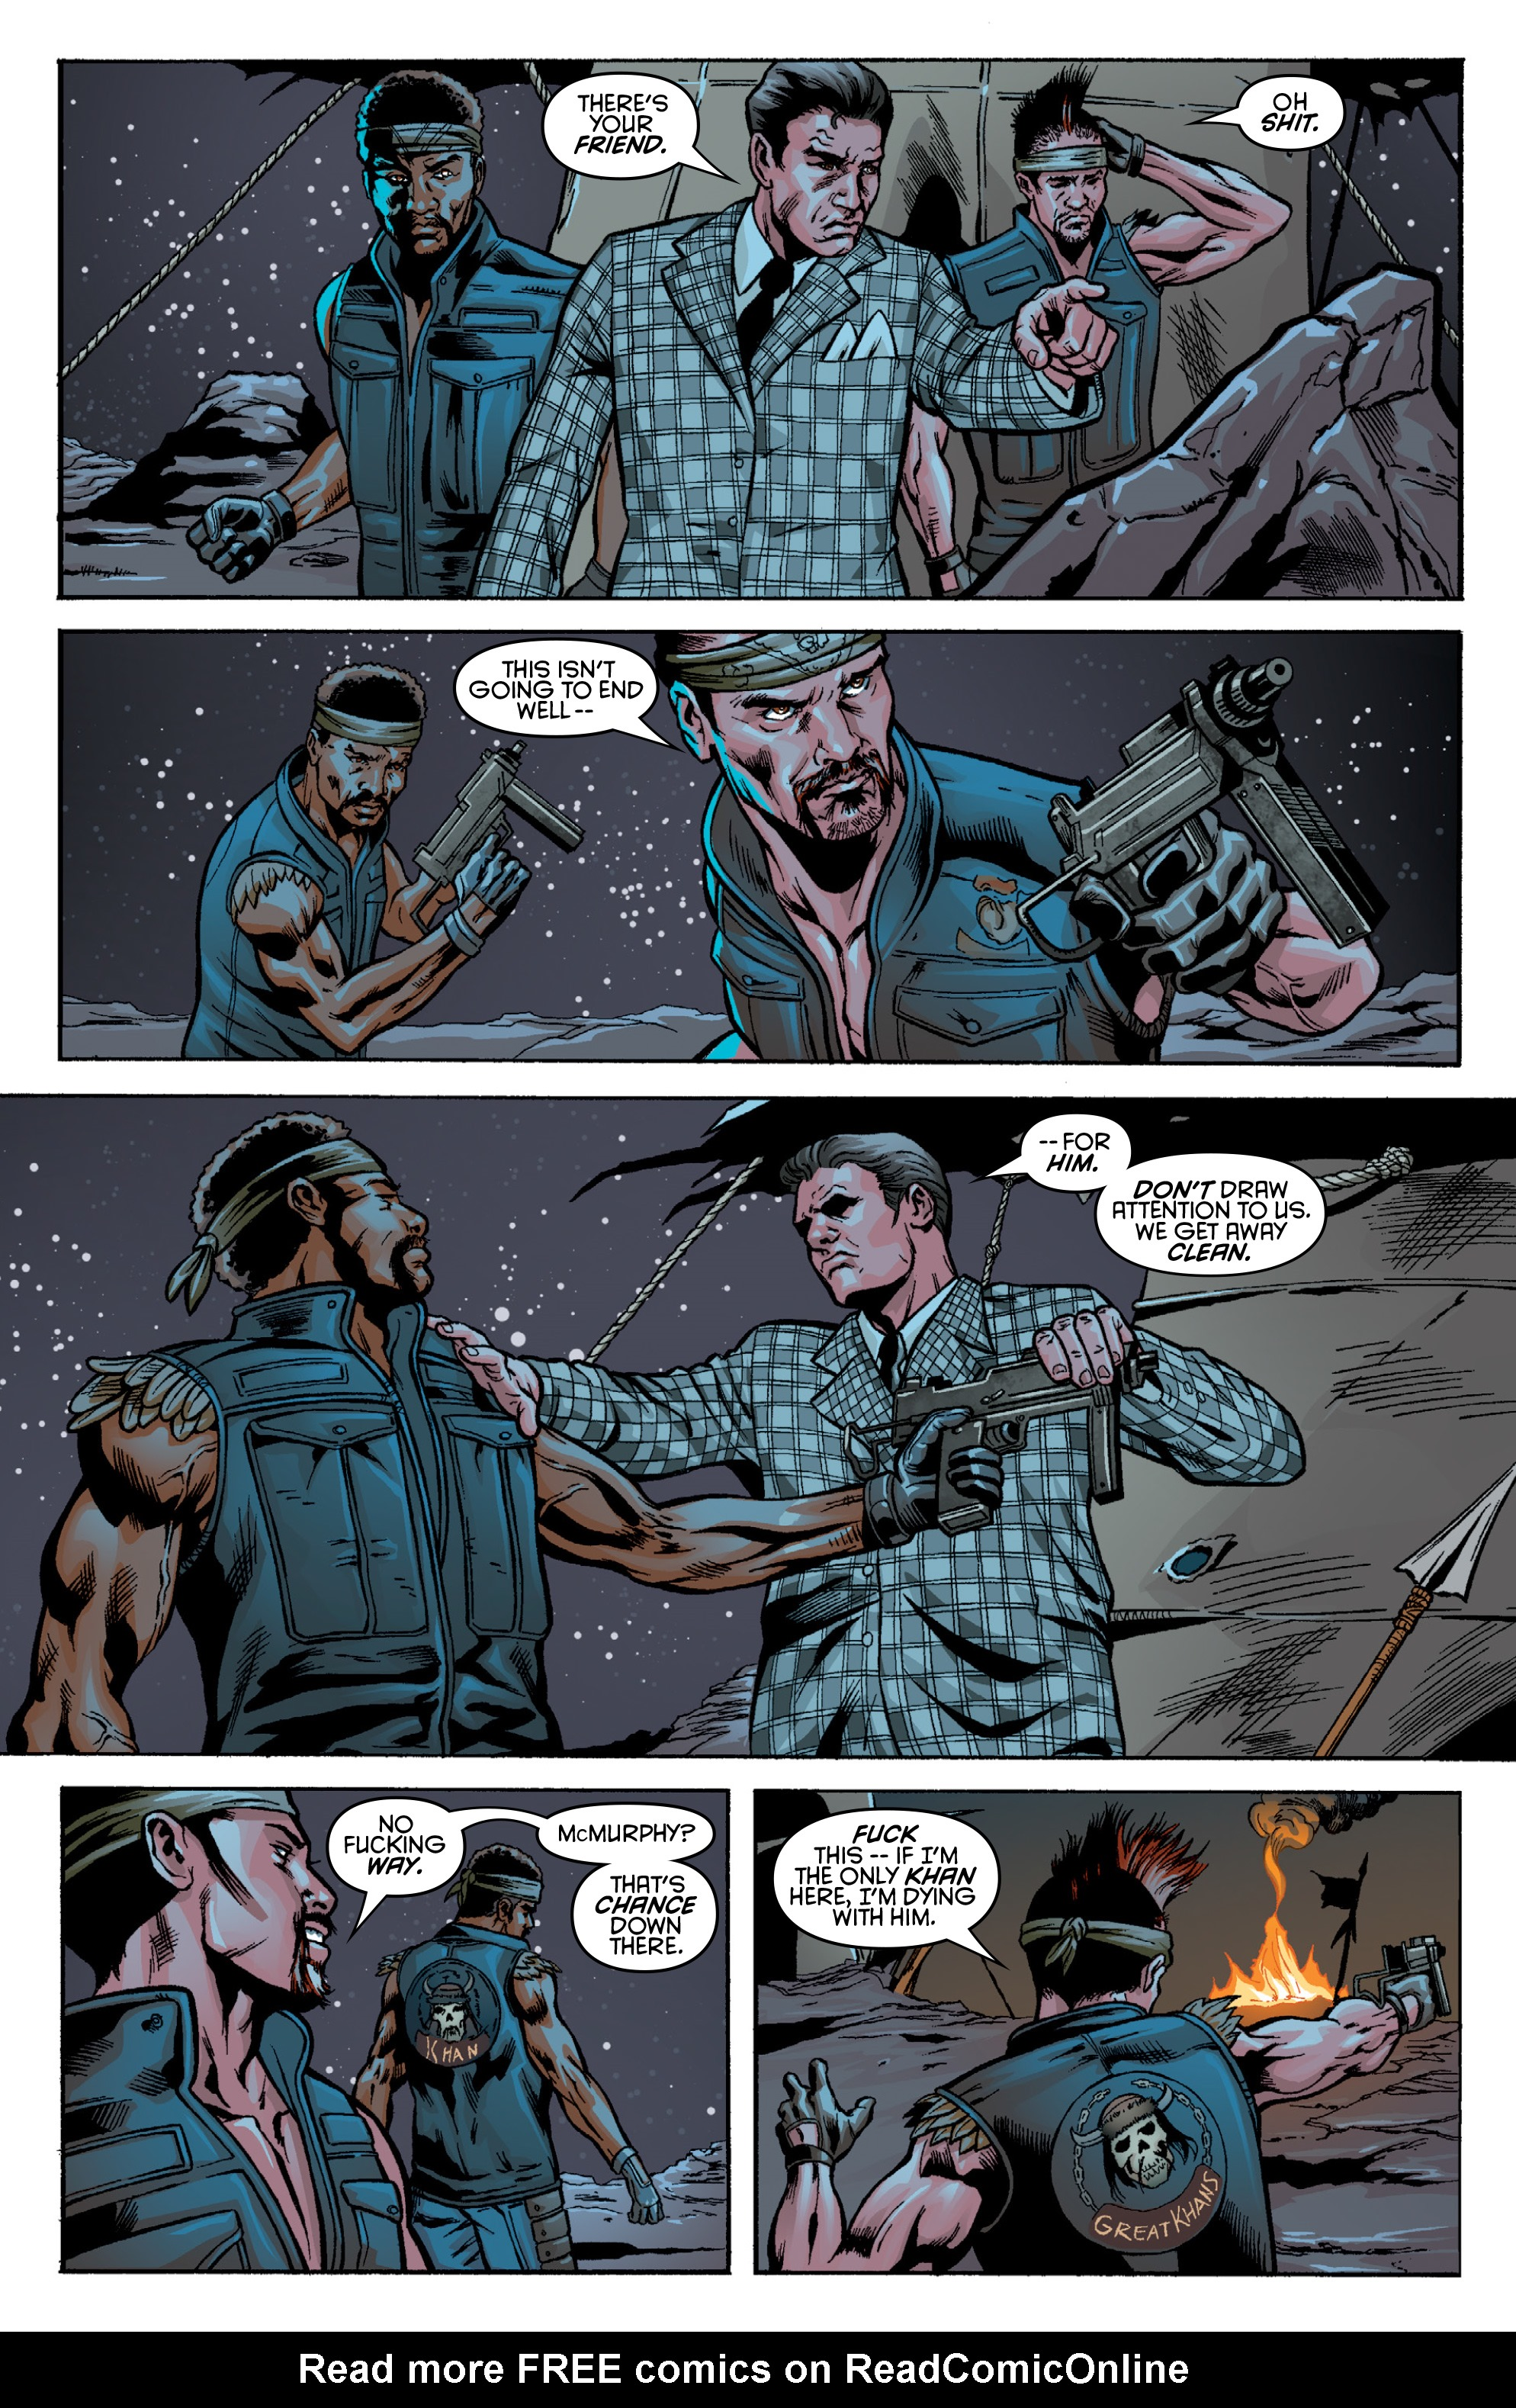 Read online Fallout: New Vegas-All Roads comic -  Issue # Full - 29